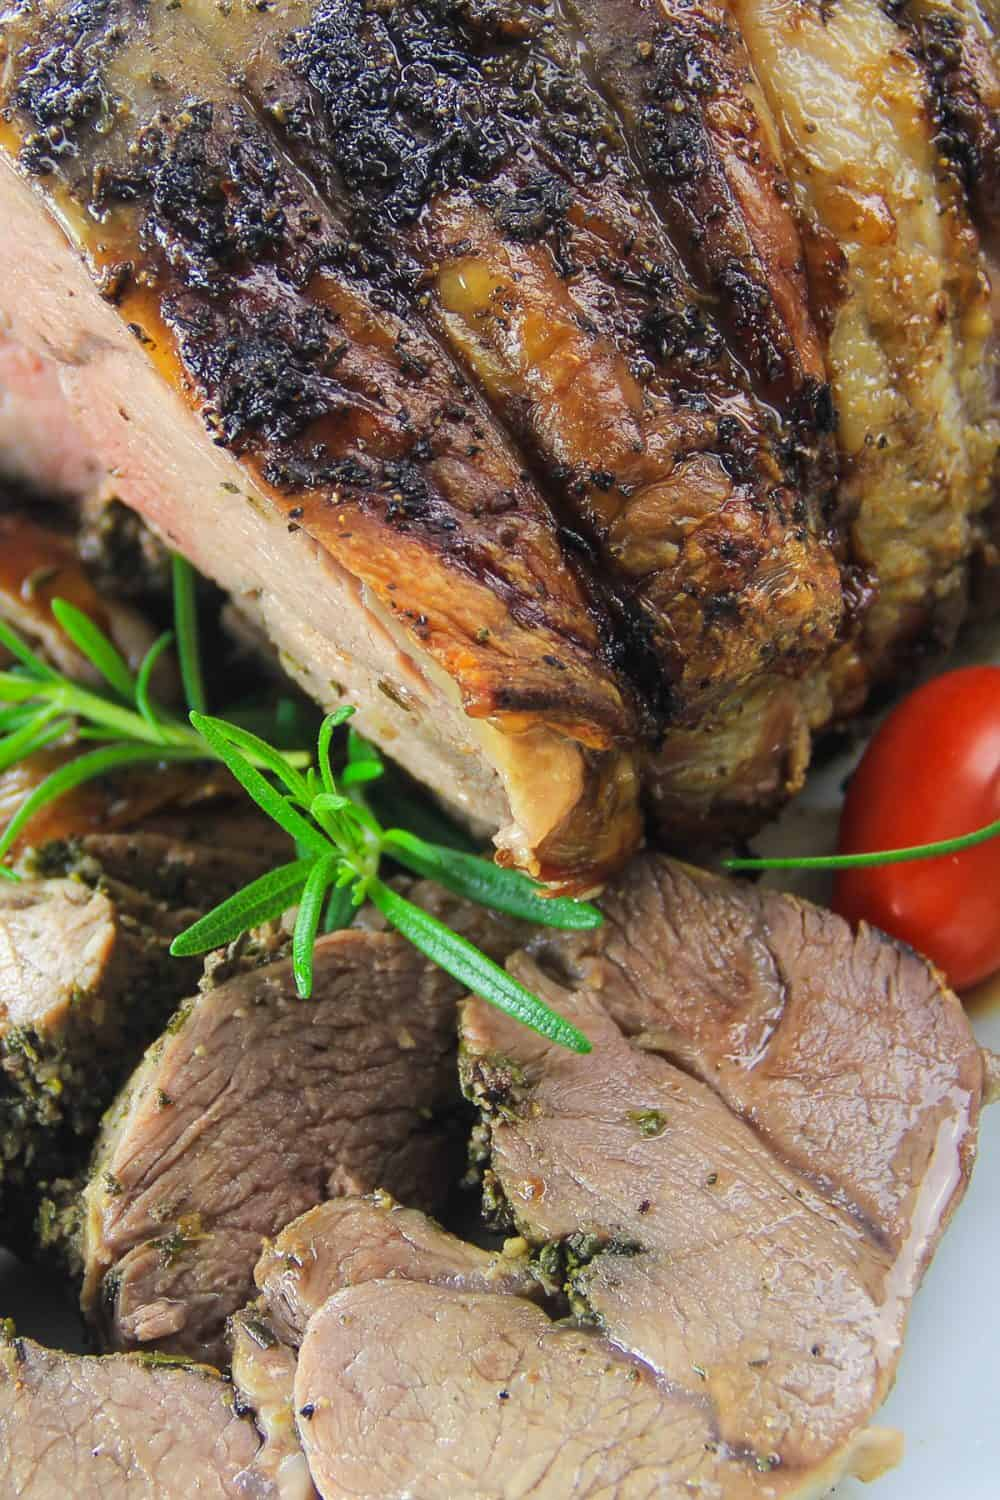 boneless roasted leg of lamb with rosemary and cherry tomato next to it